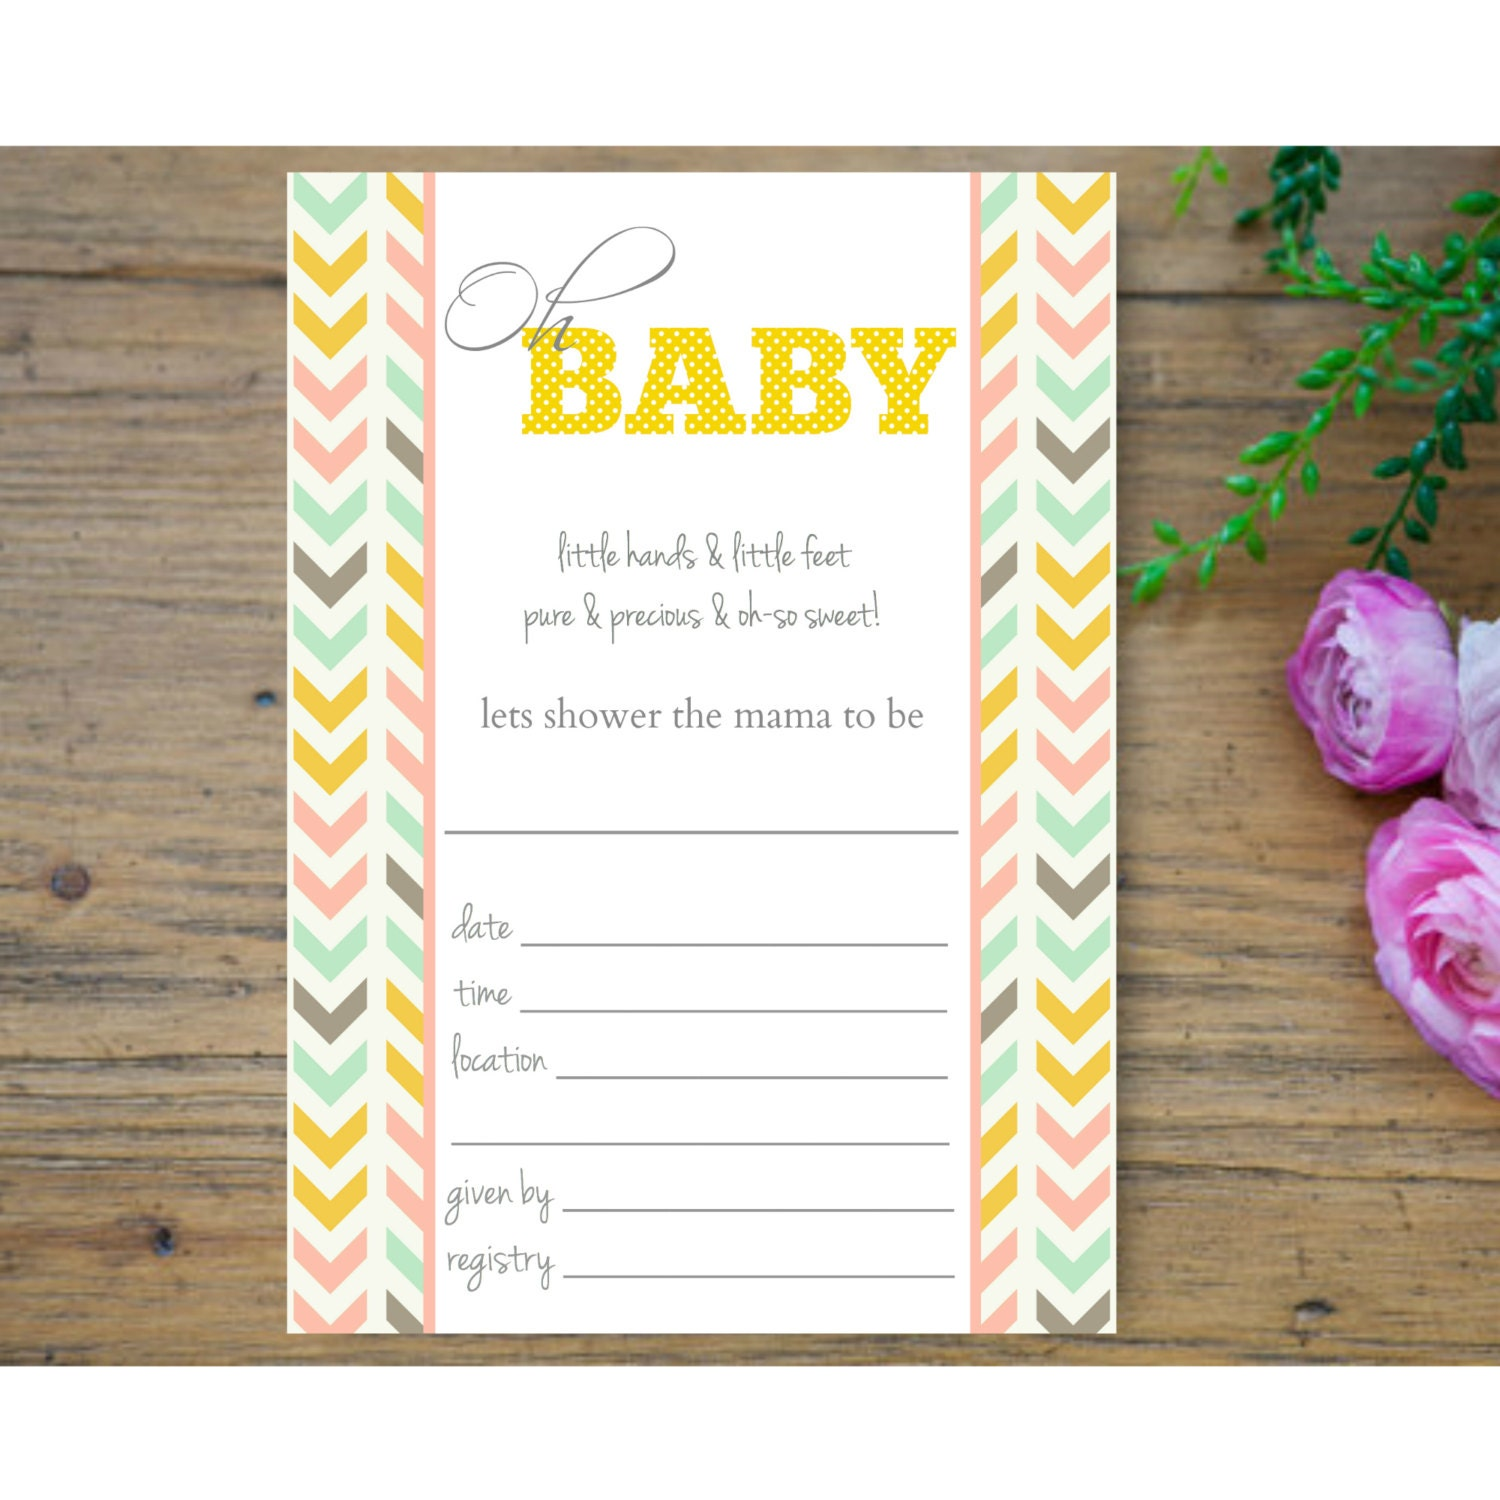 fill in the blank modern baby shower invitation by aprintpalette